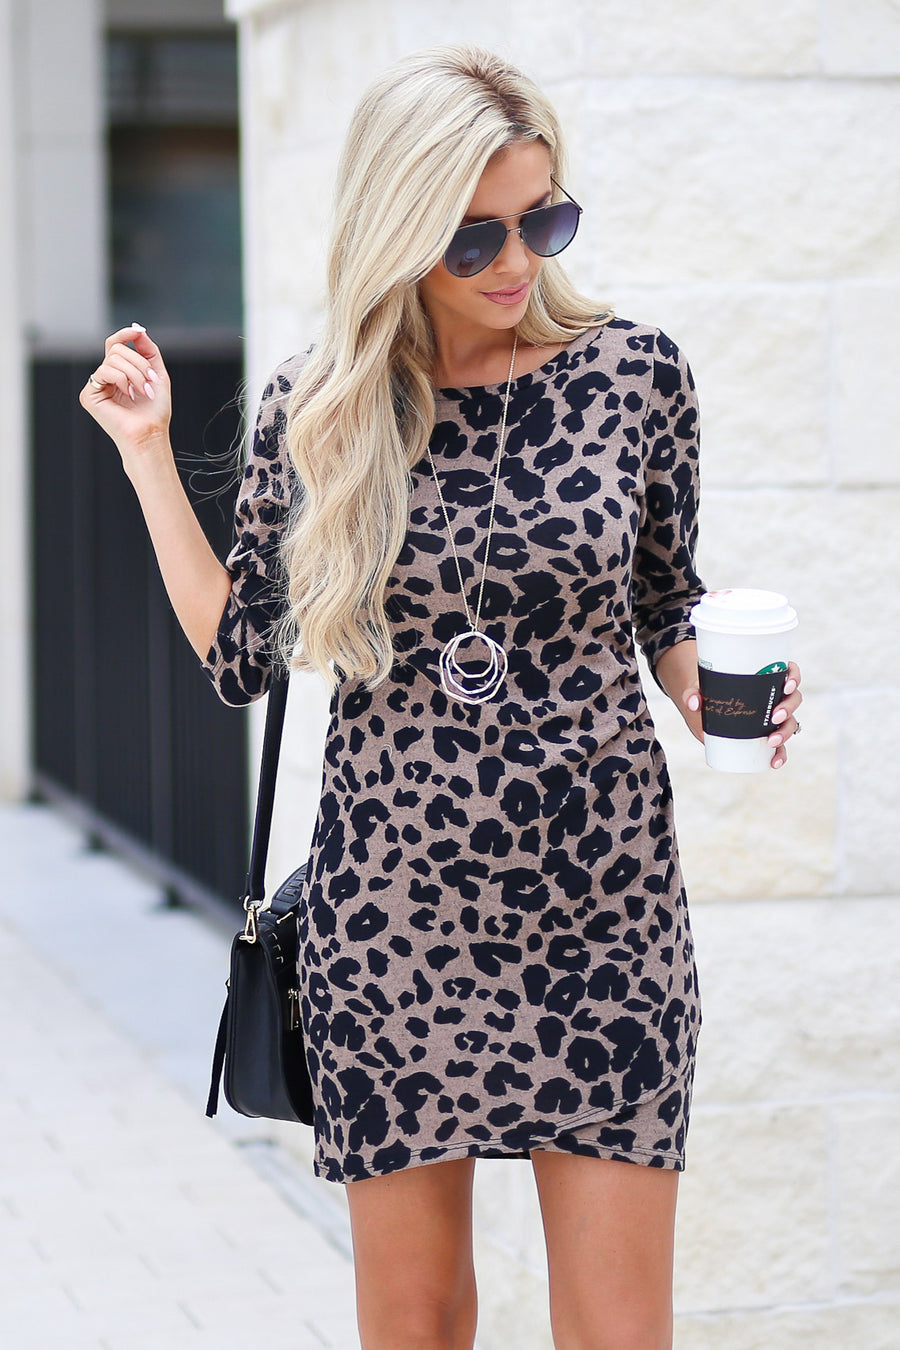 Perfectly Playful Leopard Dress - Latte color women's trendy form fitted dress, touching details, girls' night out style, fall outfit, closet candy boutique 1